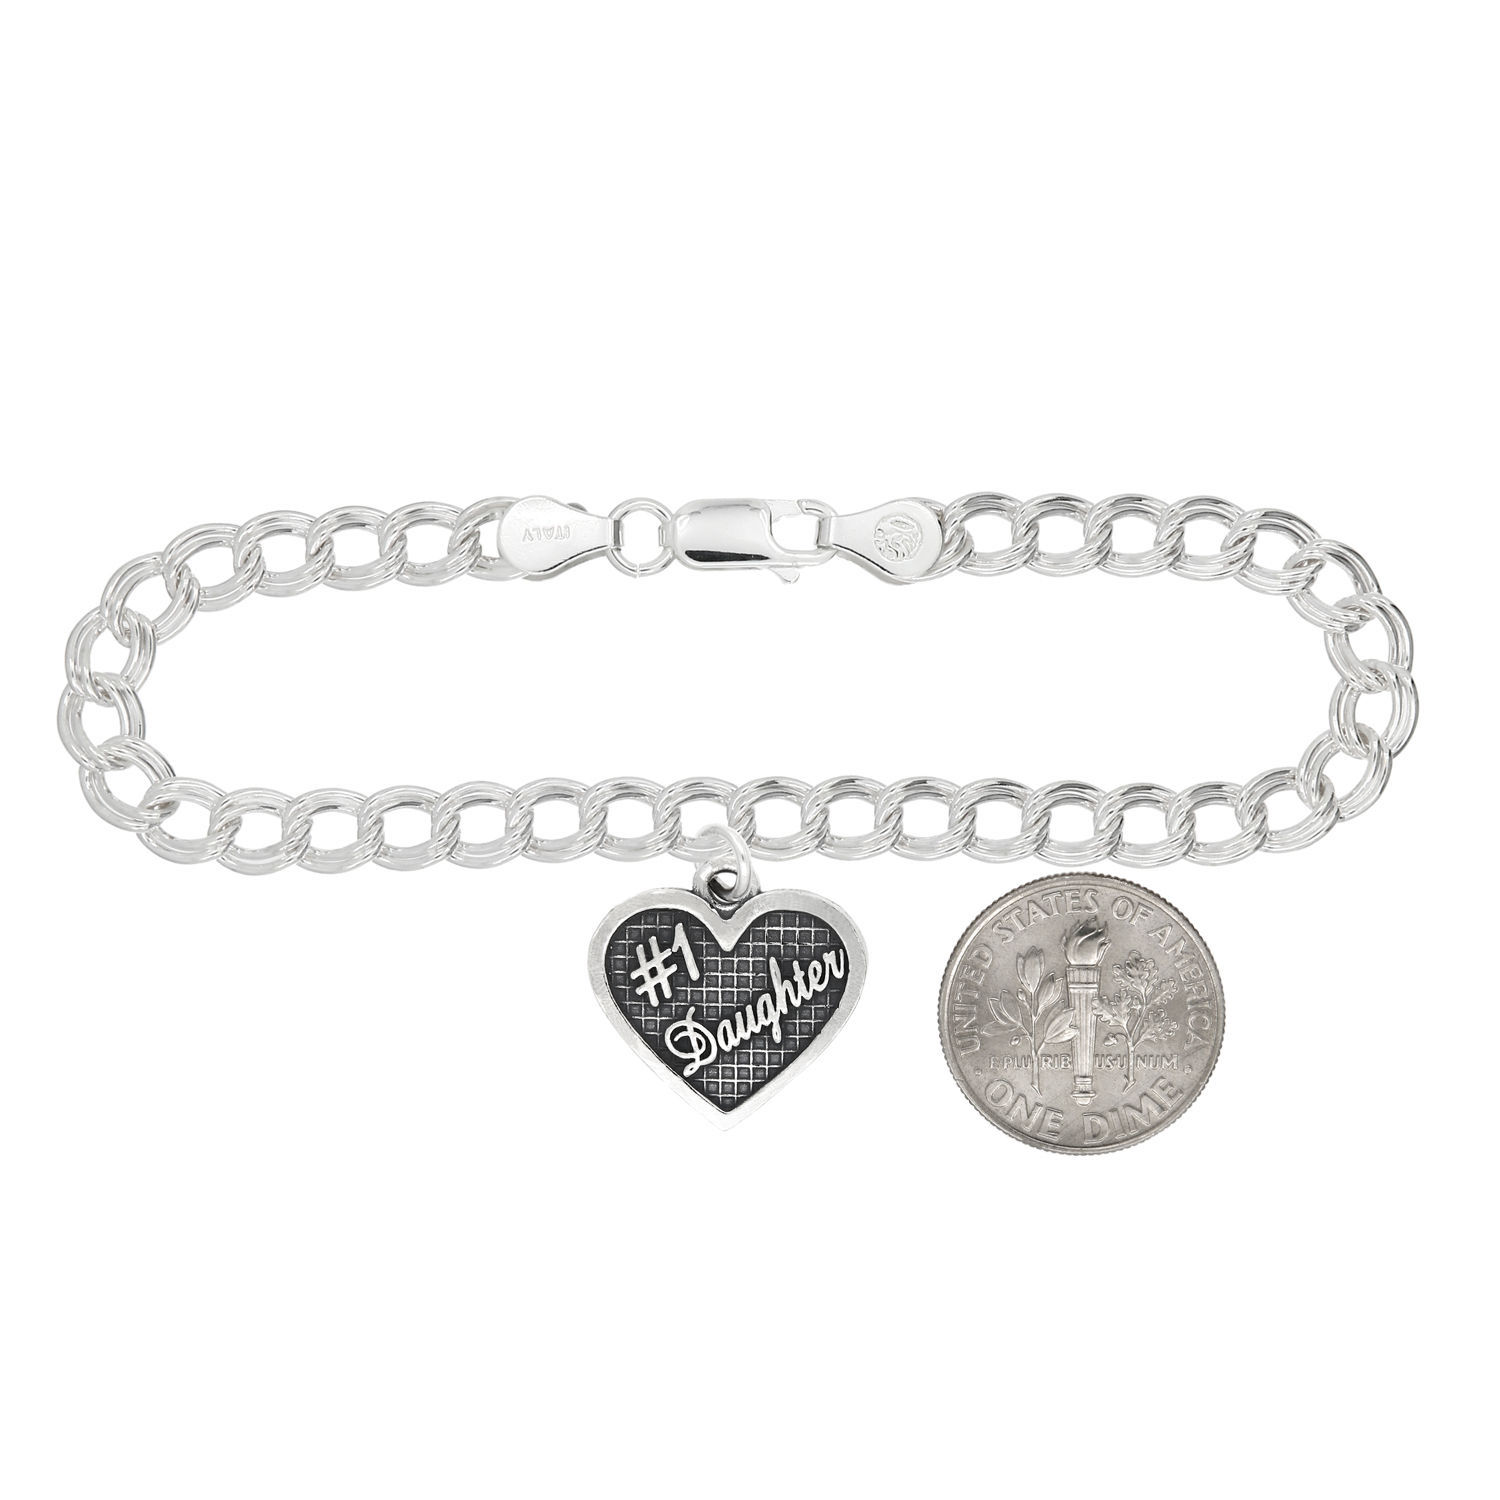 Sterling Silver Oxidized Textured #1 Daughter Charm w/ Polished Charm Bracelet